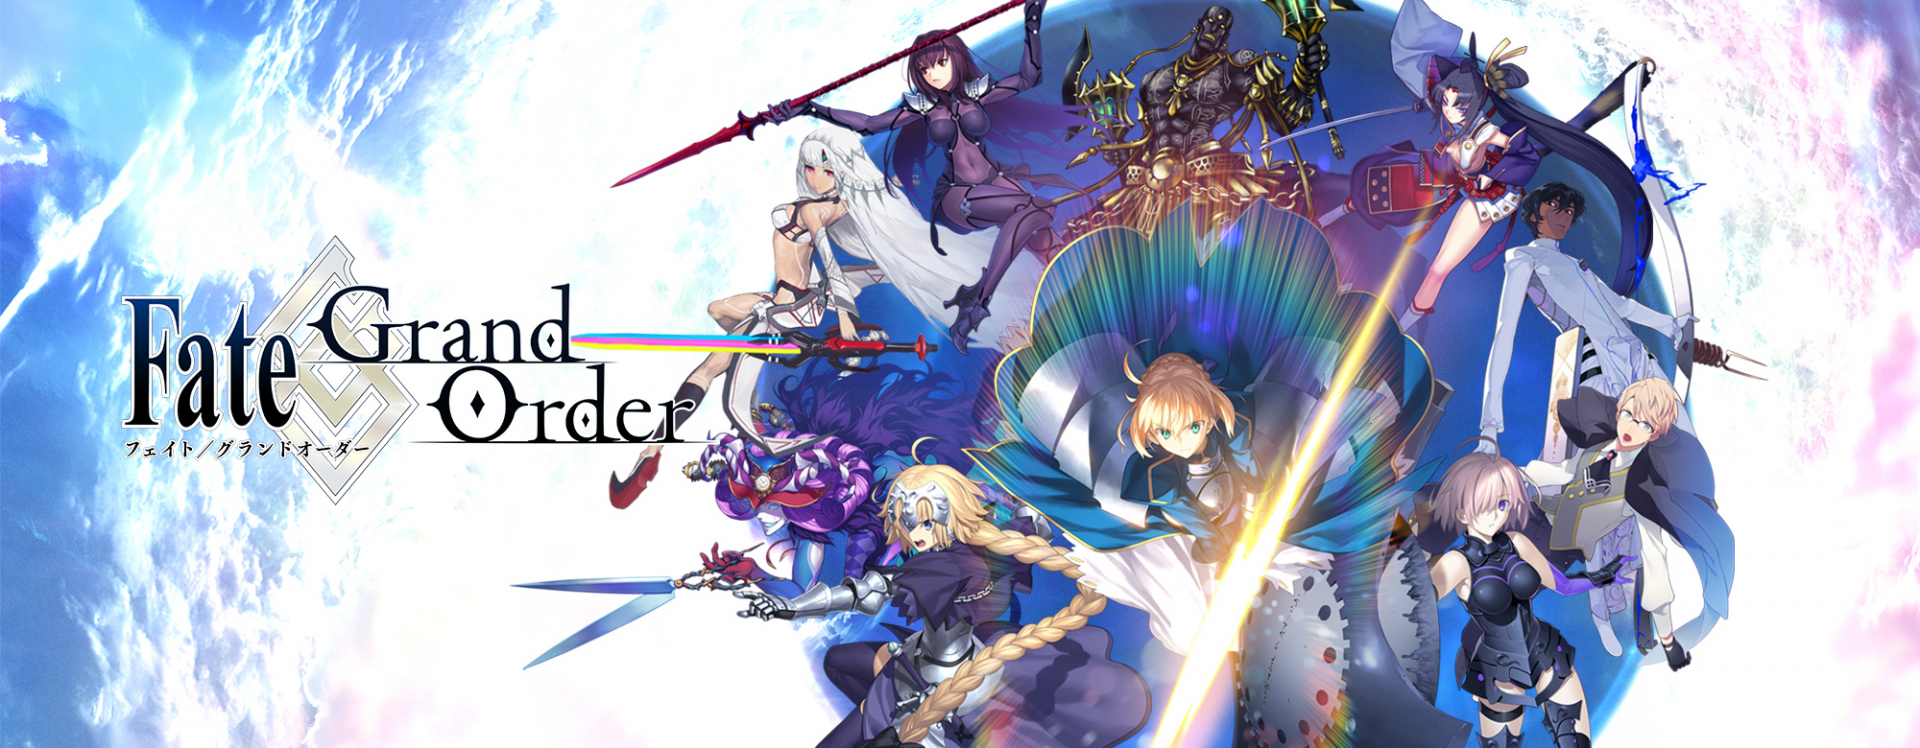 how to play fate grand order on pc 2018